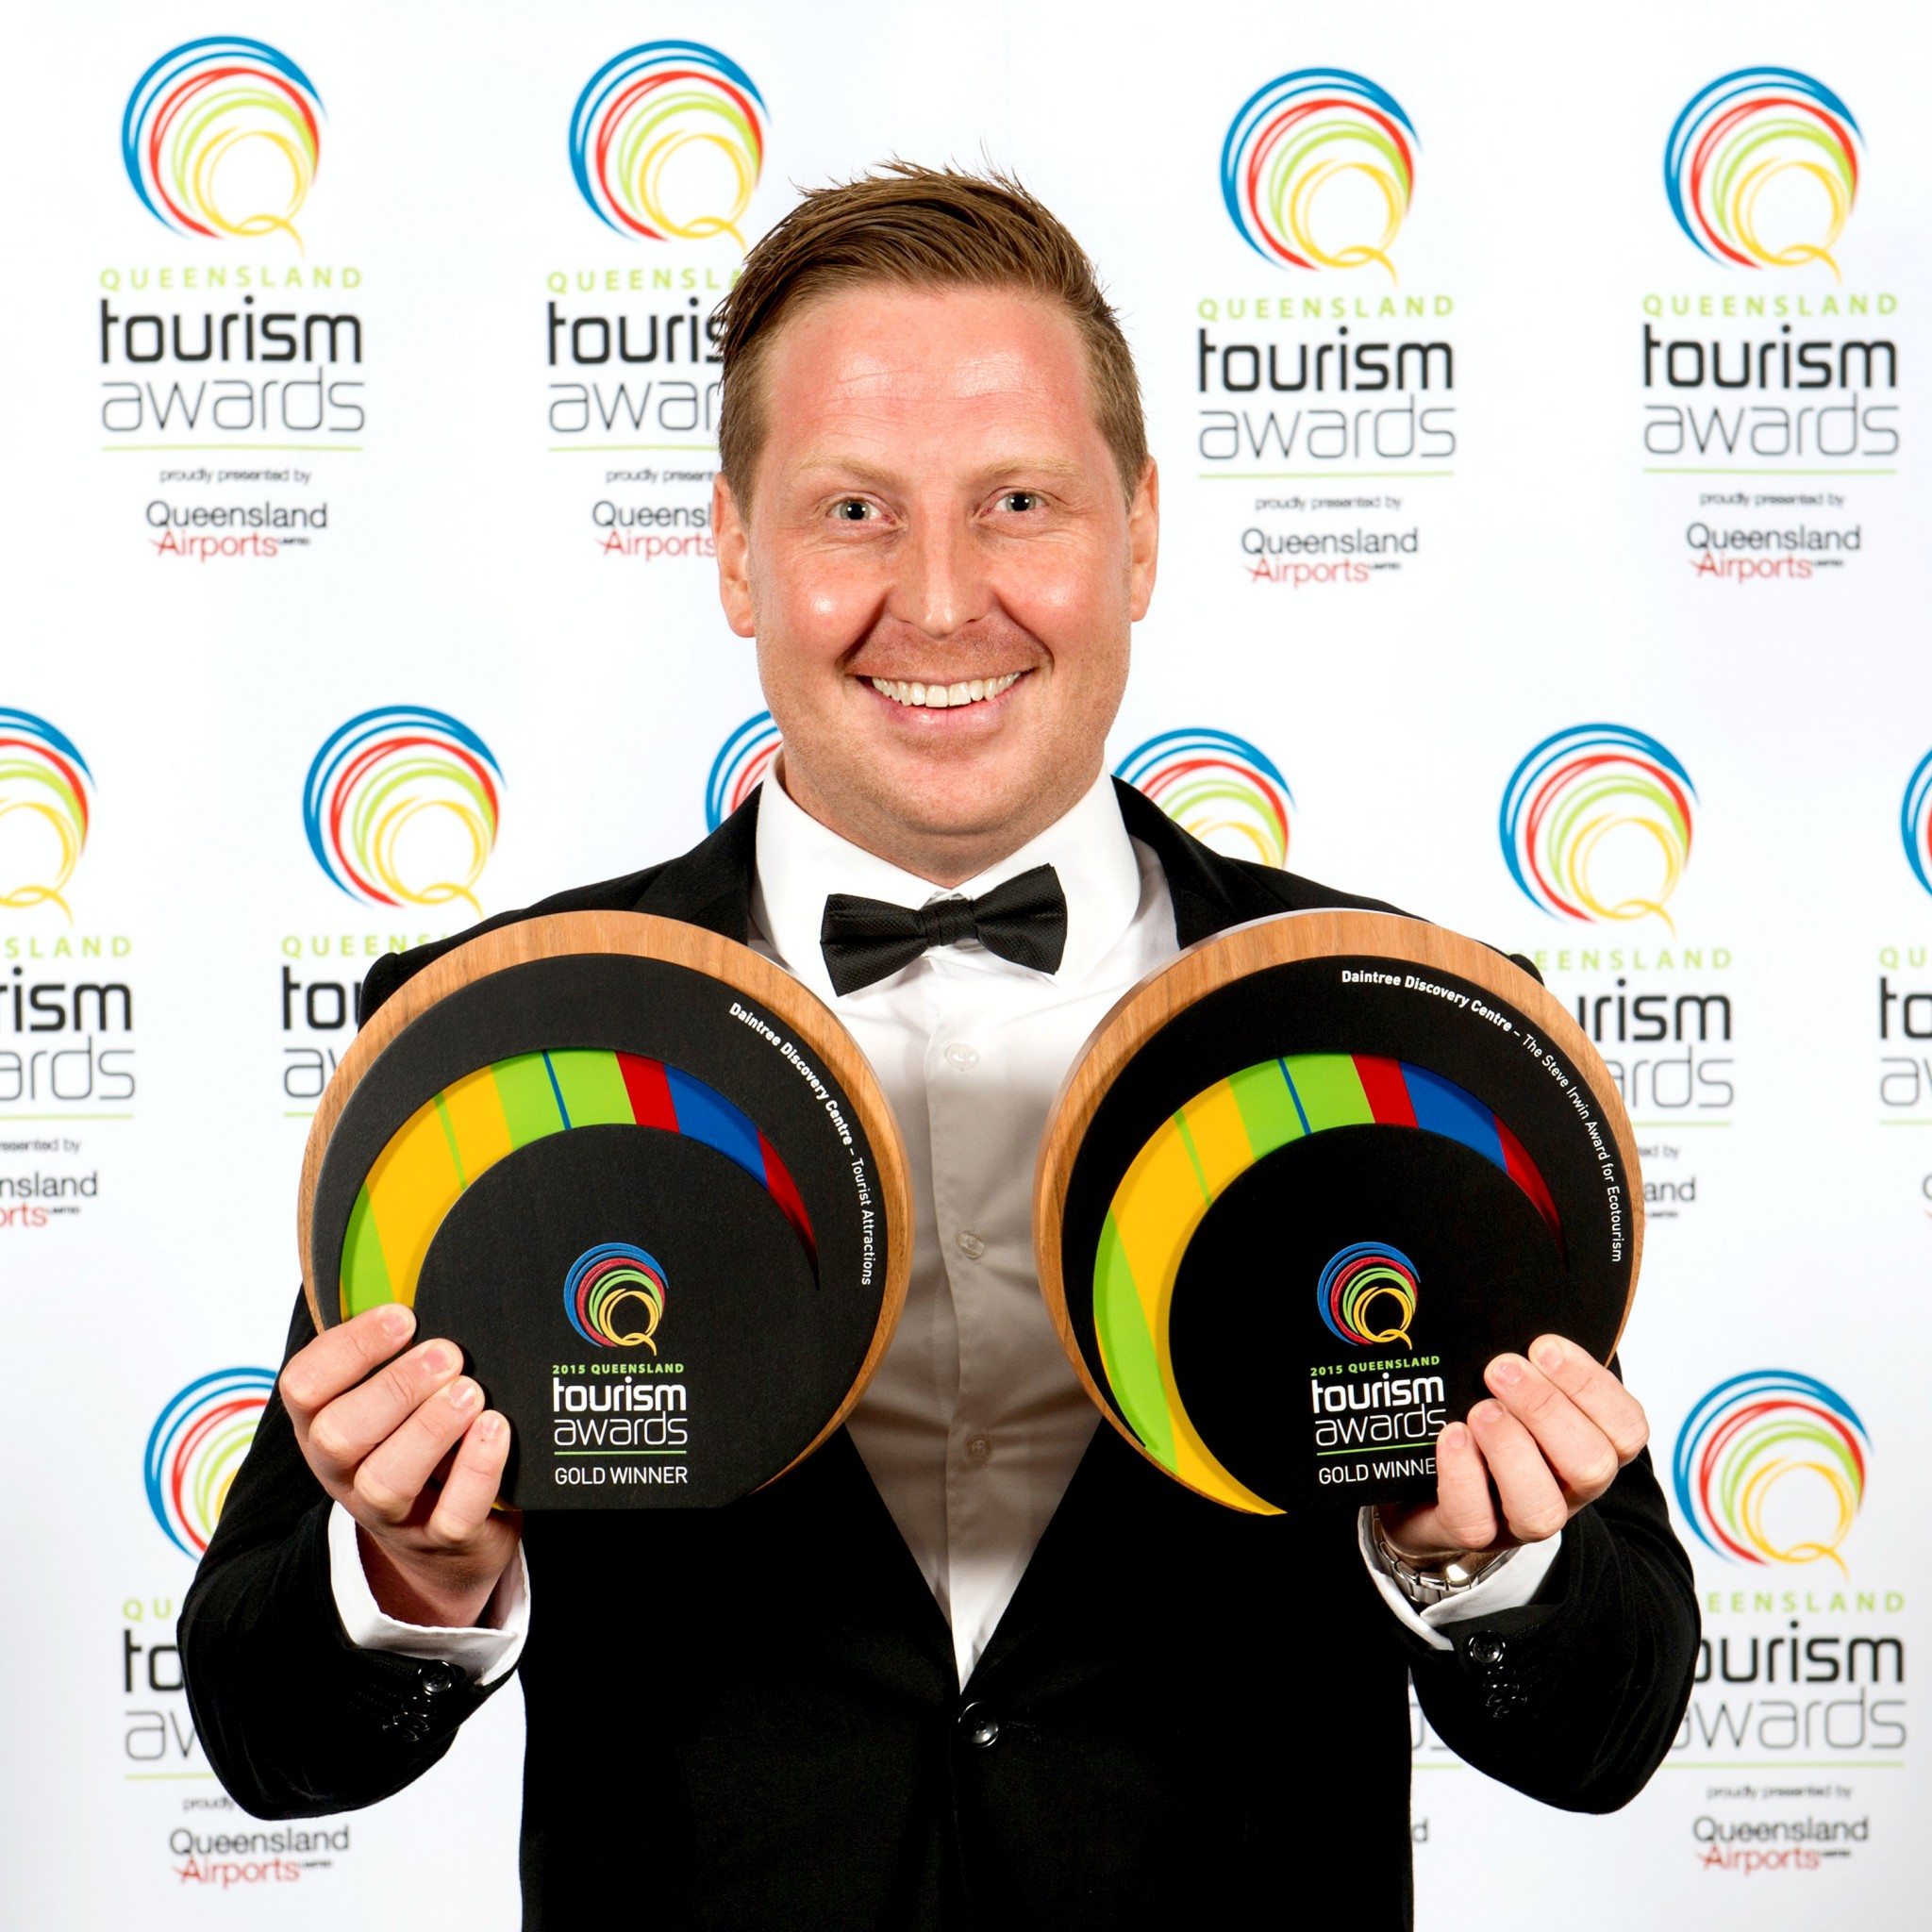 Daintree Discovery Centre wins Double Gold QTA 2105